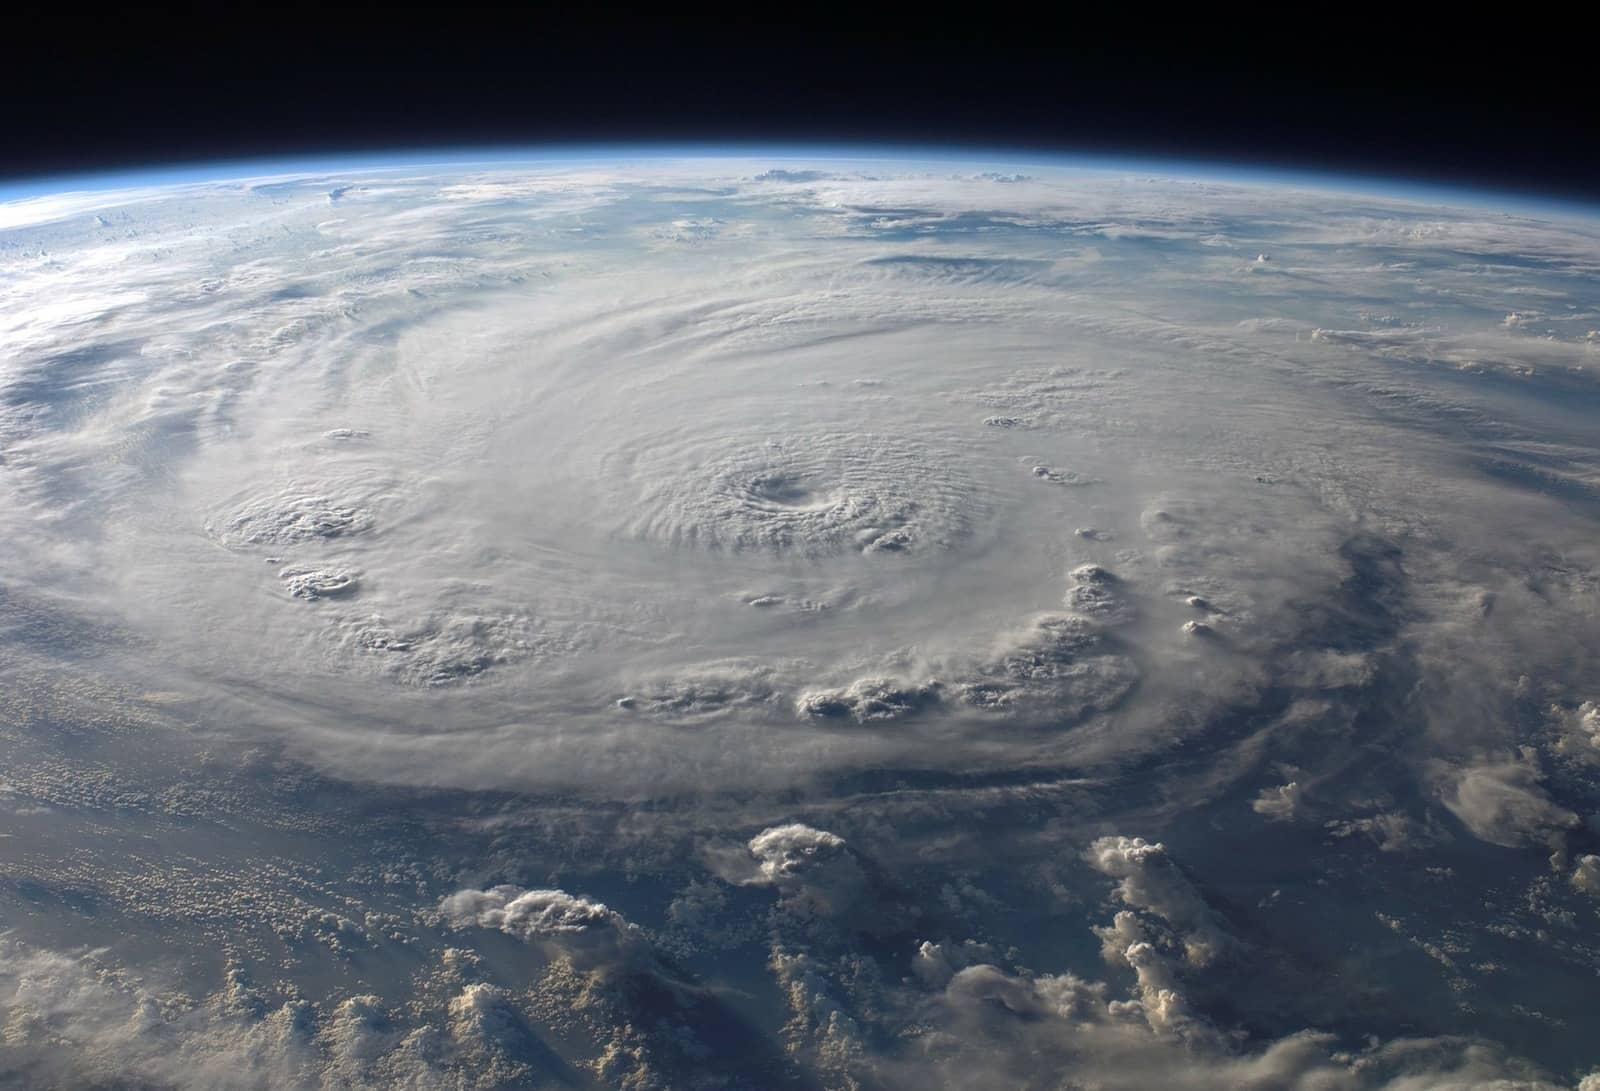 Image of a hurricane. An iPhone FM radio could receive emergency broadcasts during hurricanes.